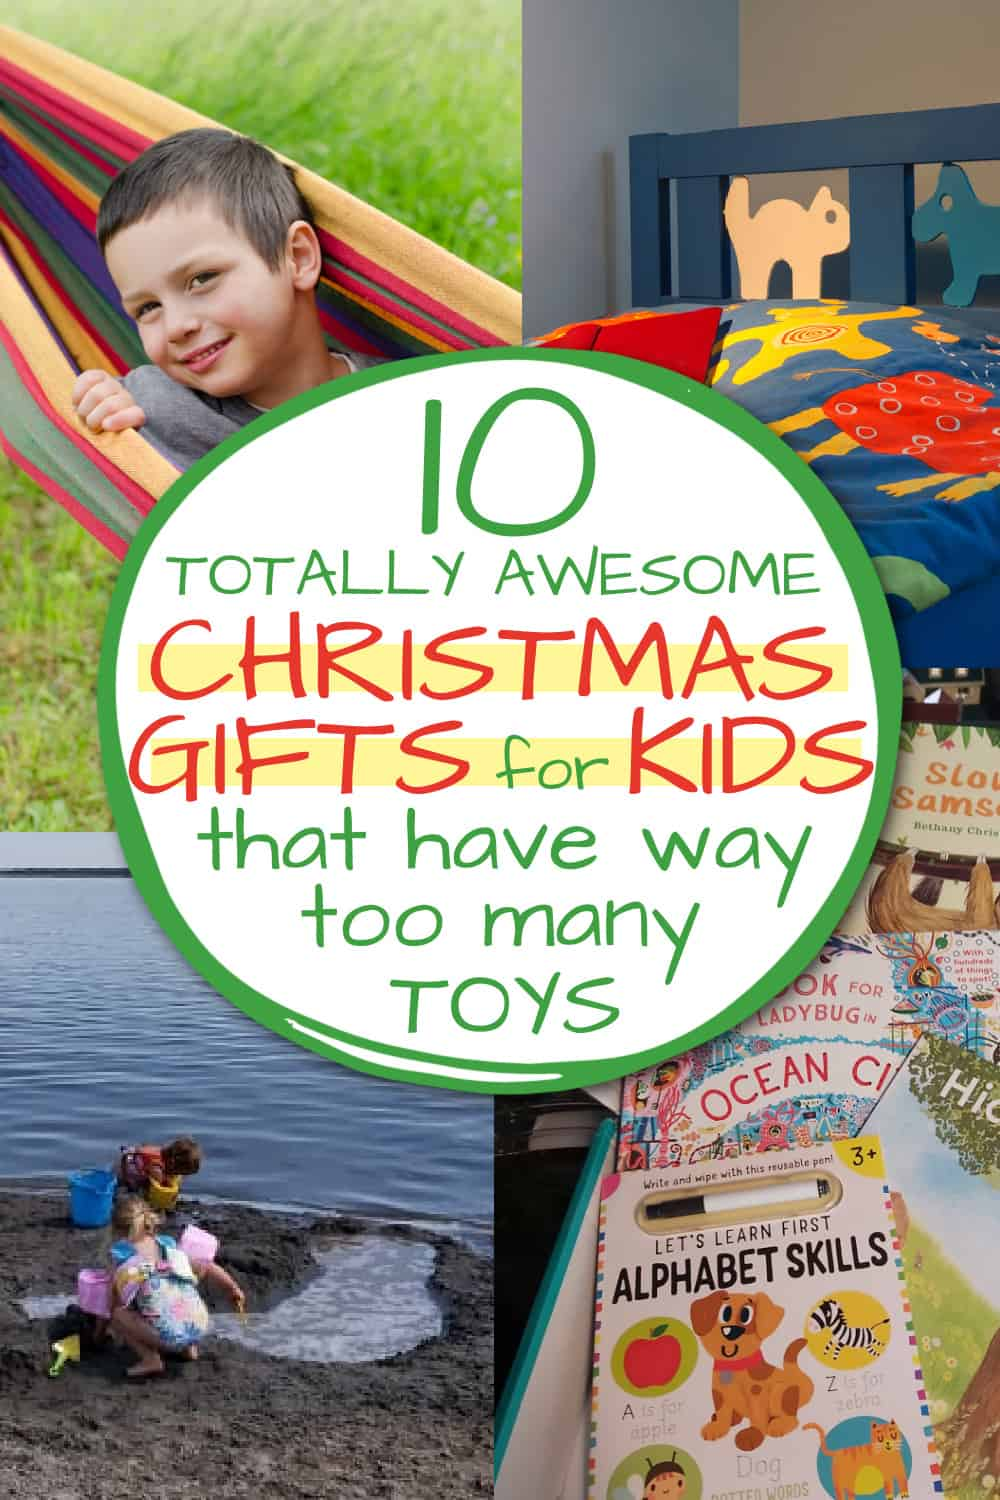 gifts for kids who have too many toys